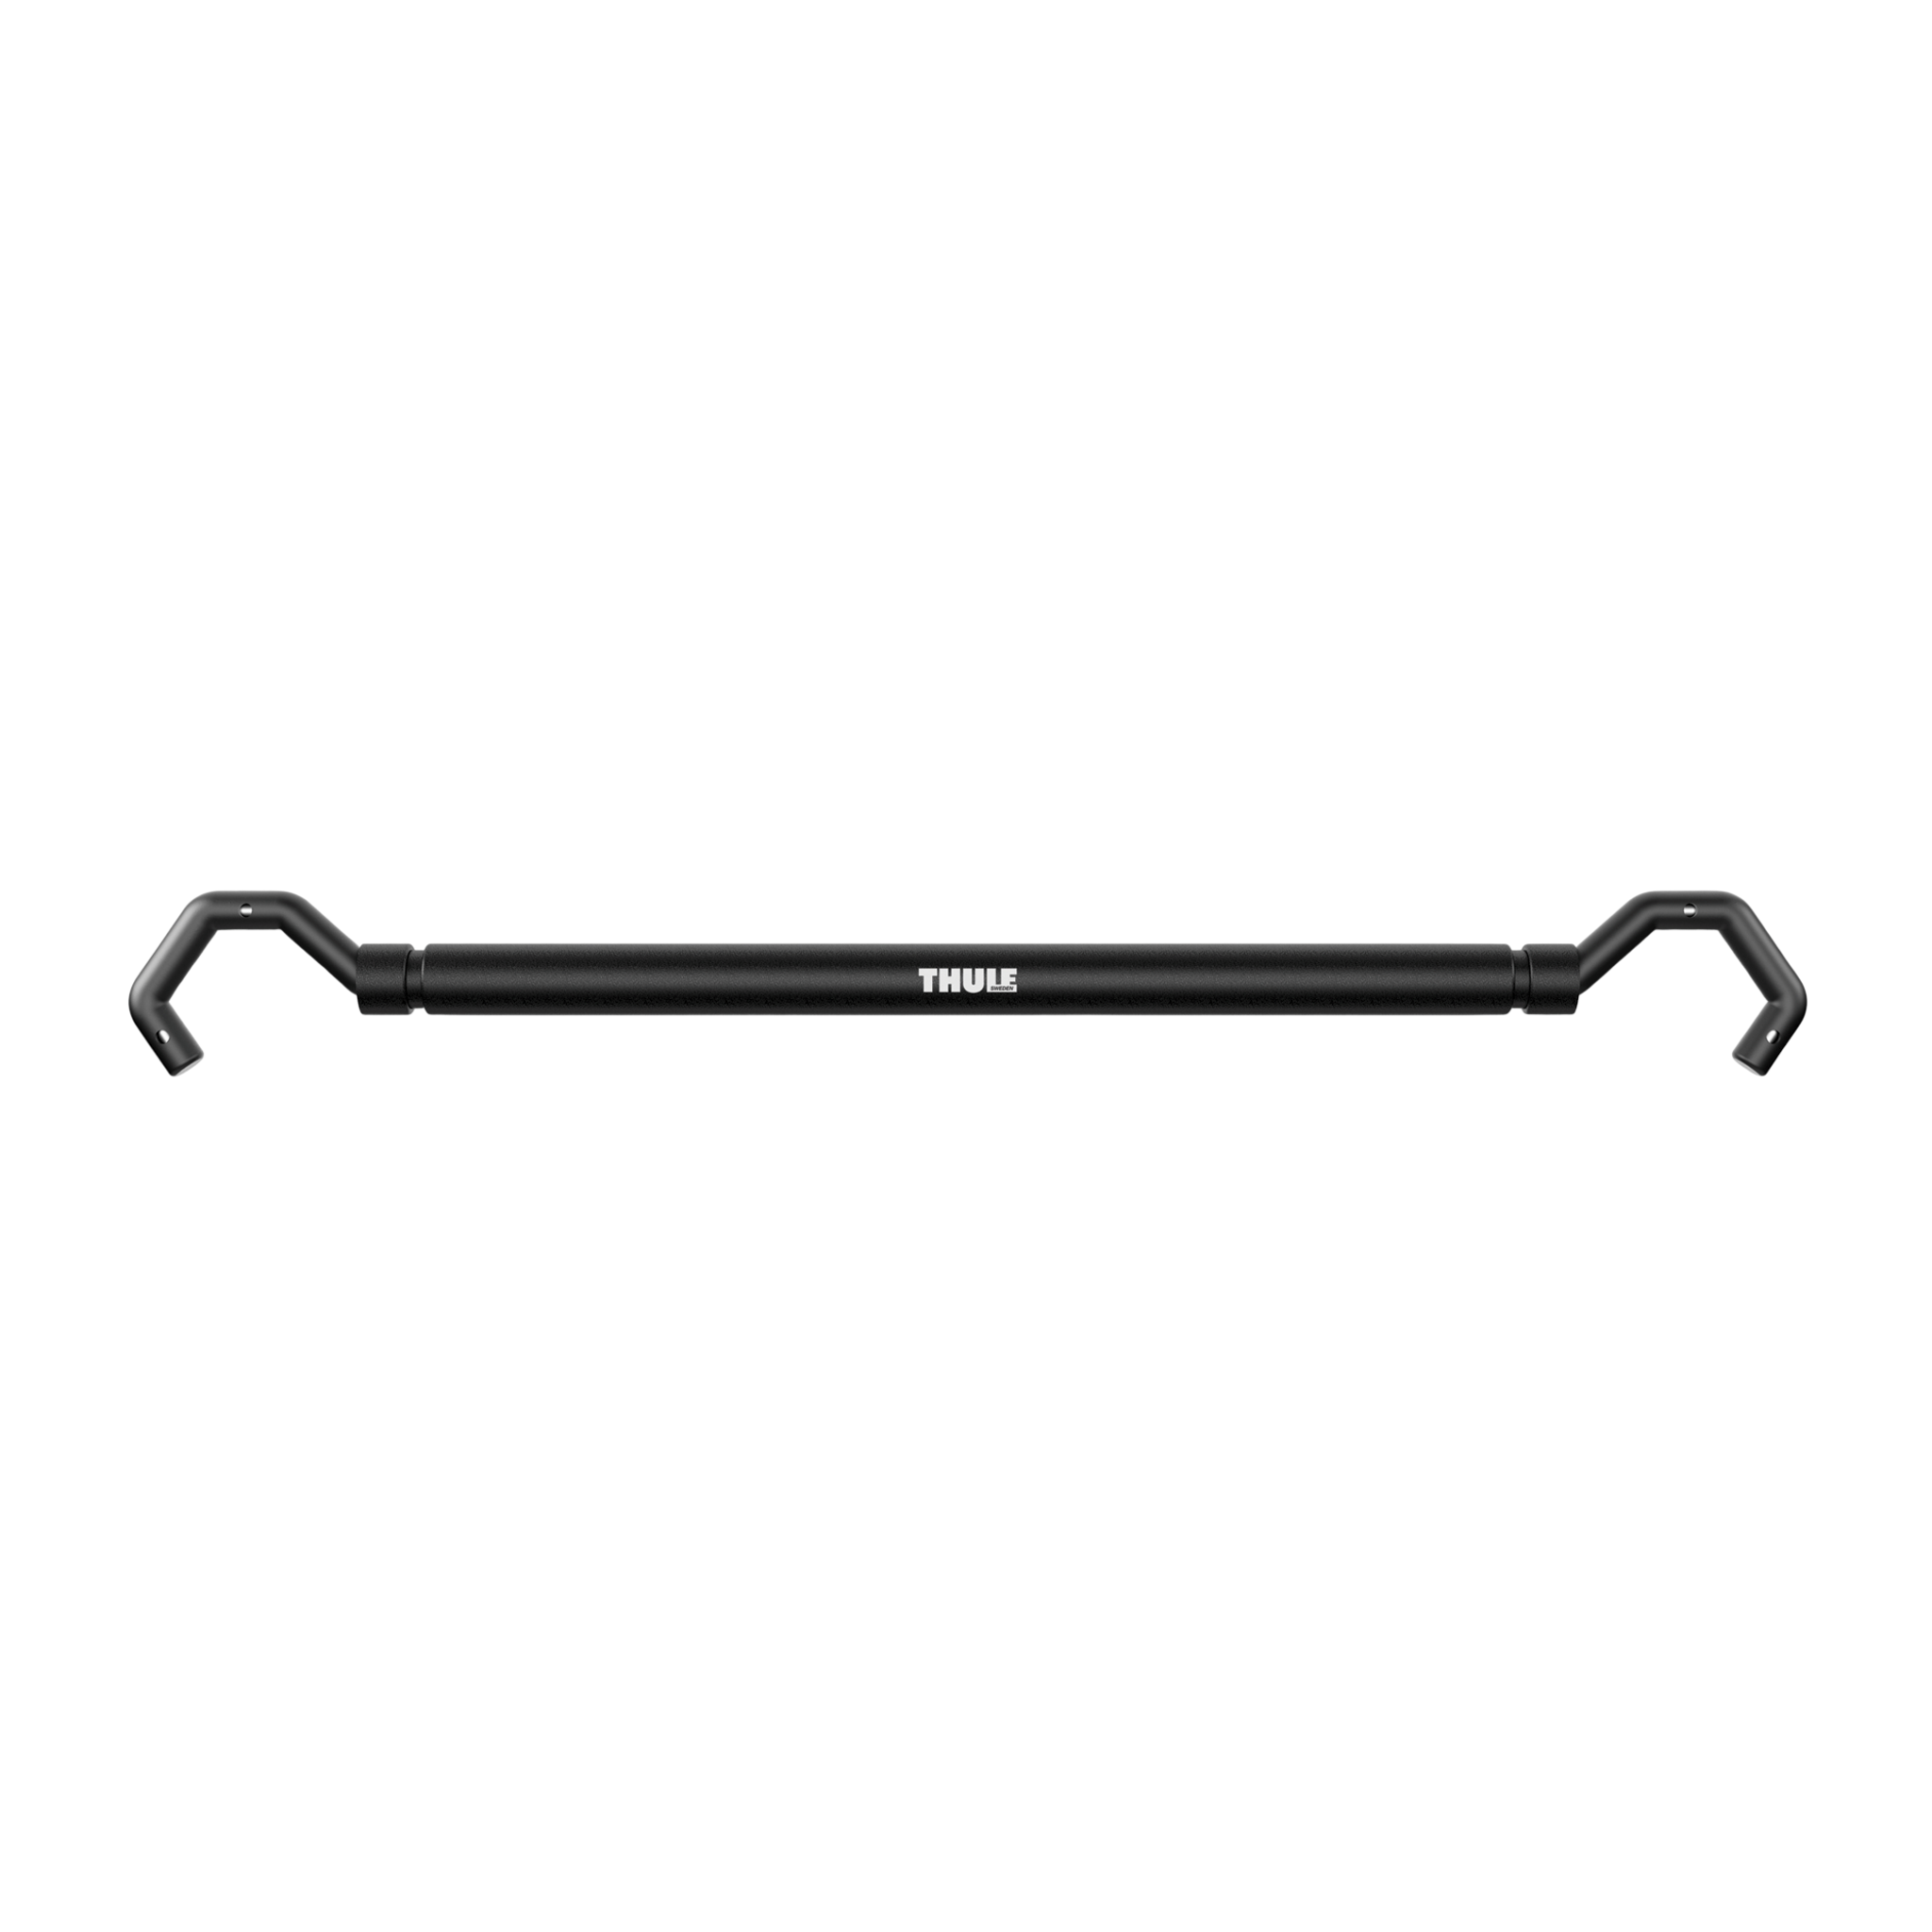 Thule Frame adapter, rammeadapter